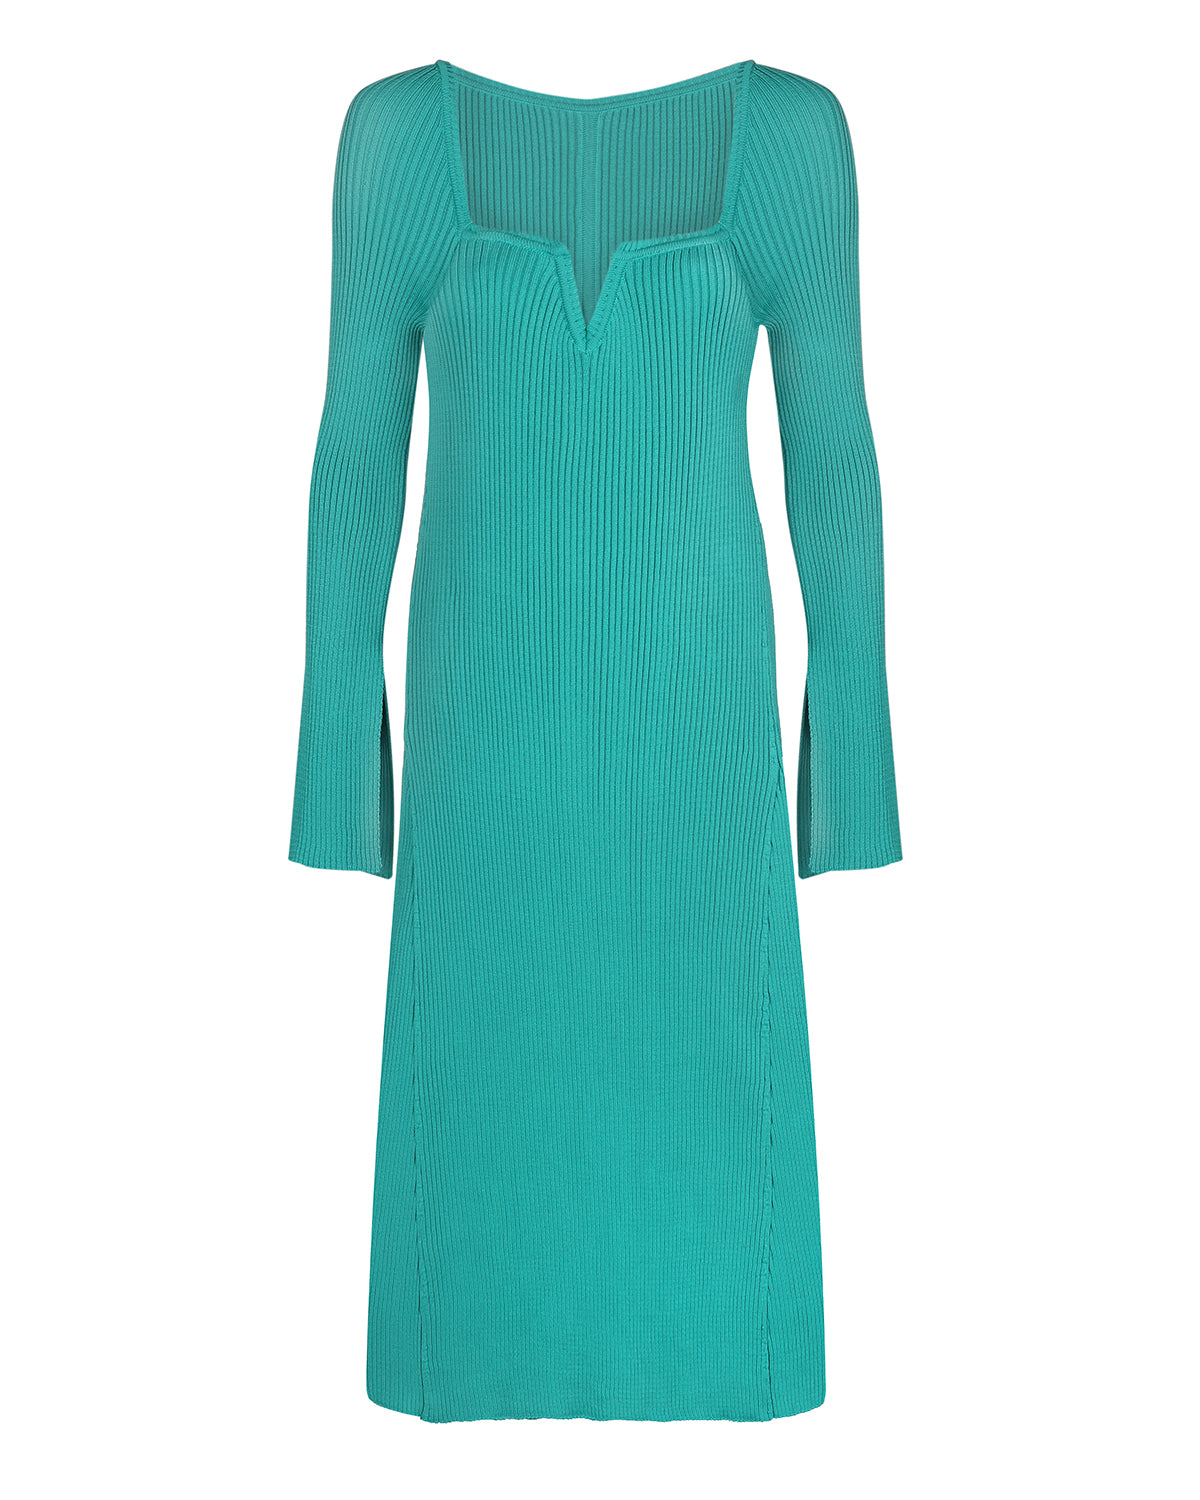 V-neck knitted midi light green dress